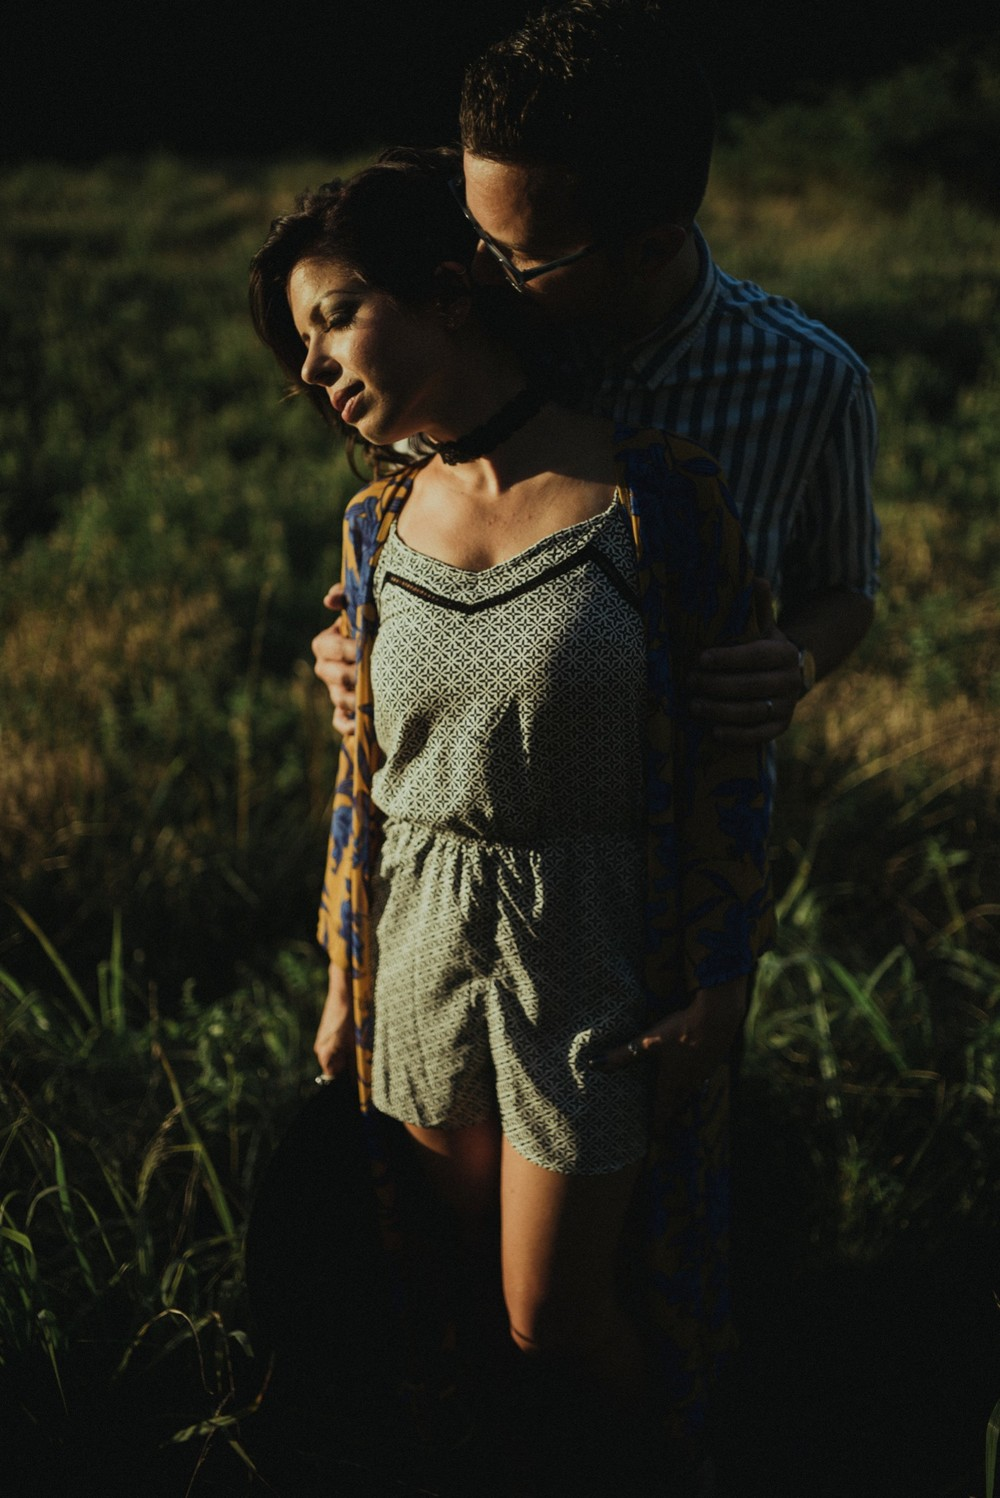 intimate-river-engagement-photos_1161.jpg